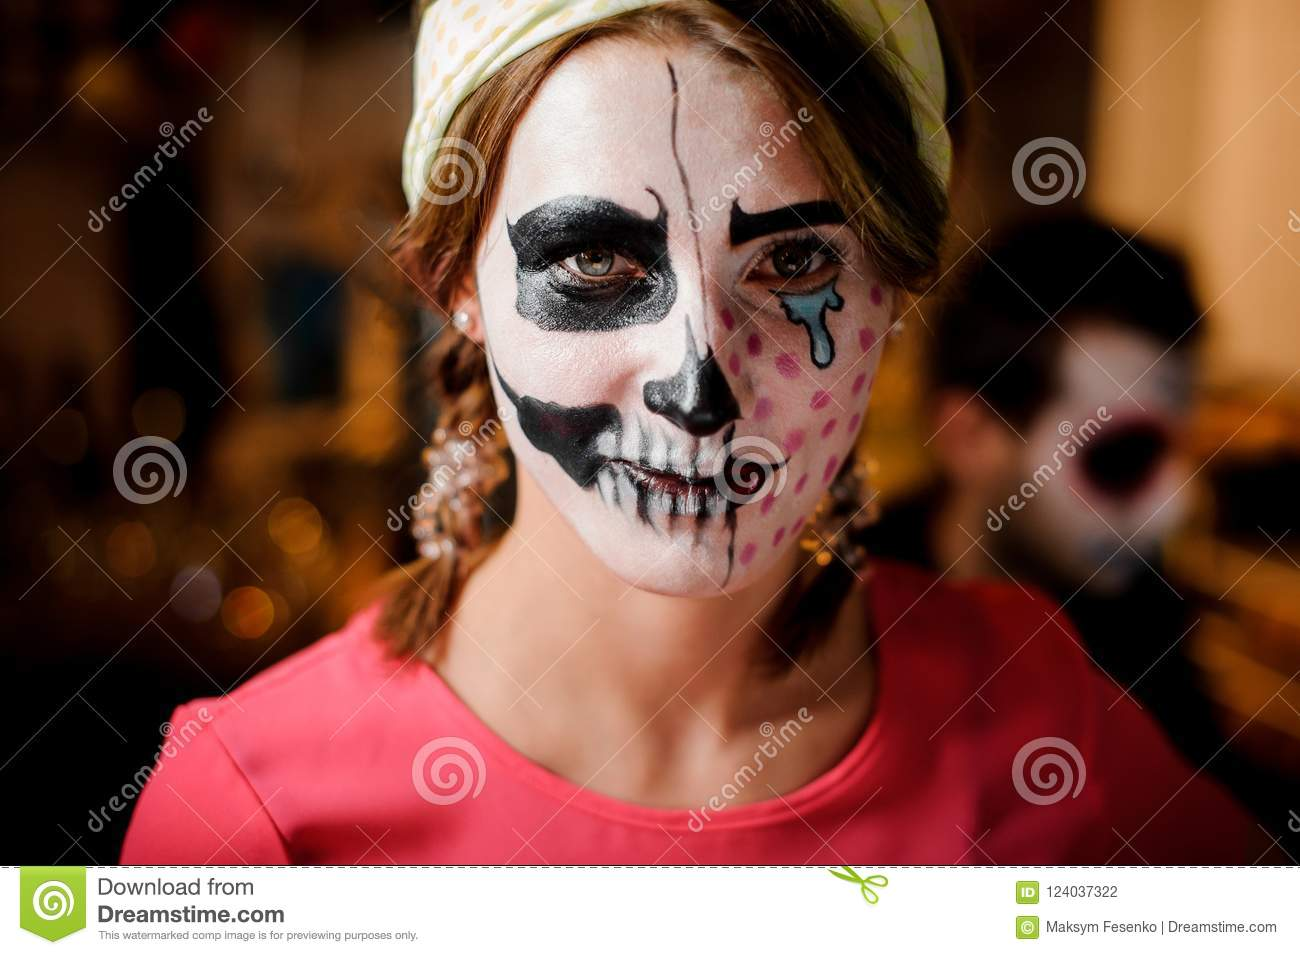 download redhead girl with adorable halloween makeup on the party stock photo image of adult